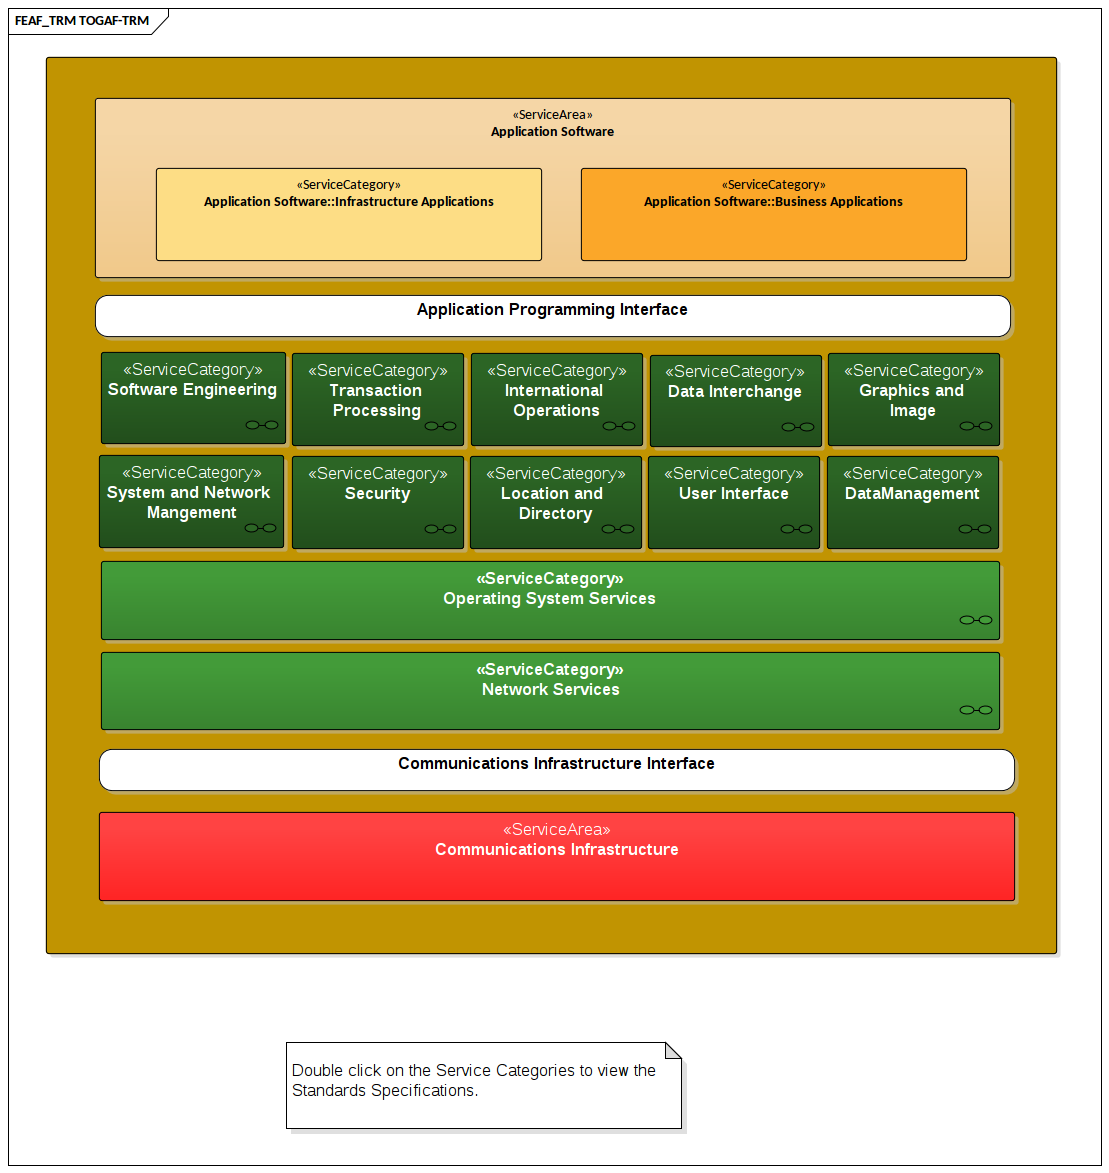 TOGAF - Technical Reference Model (TRM)